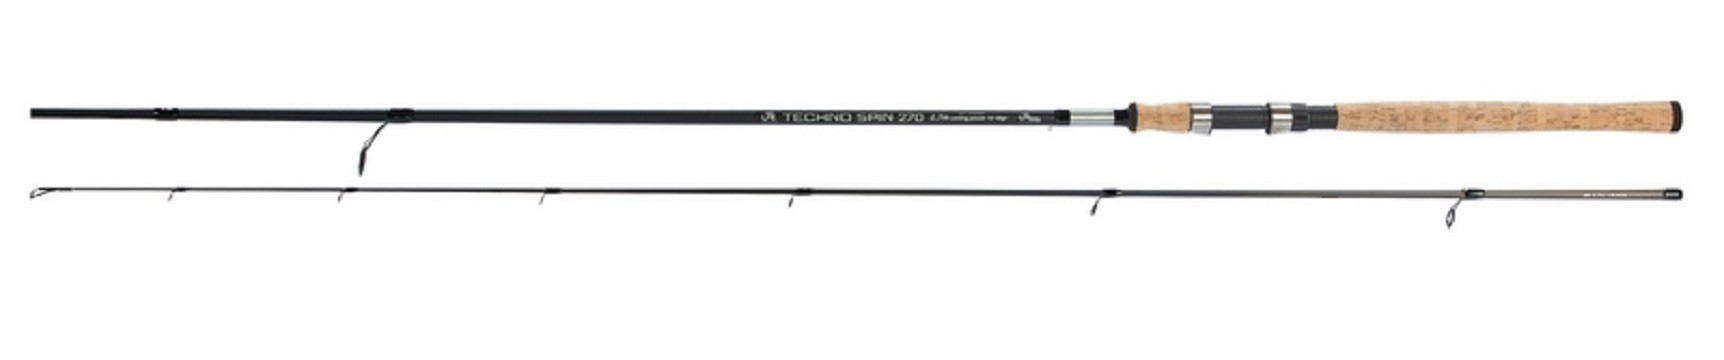 Techno Spin 2,4 m 10-30 gr Fil Fishing štap